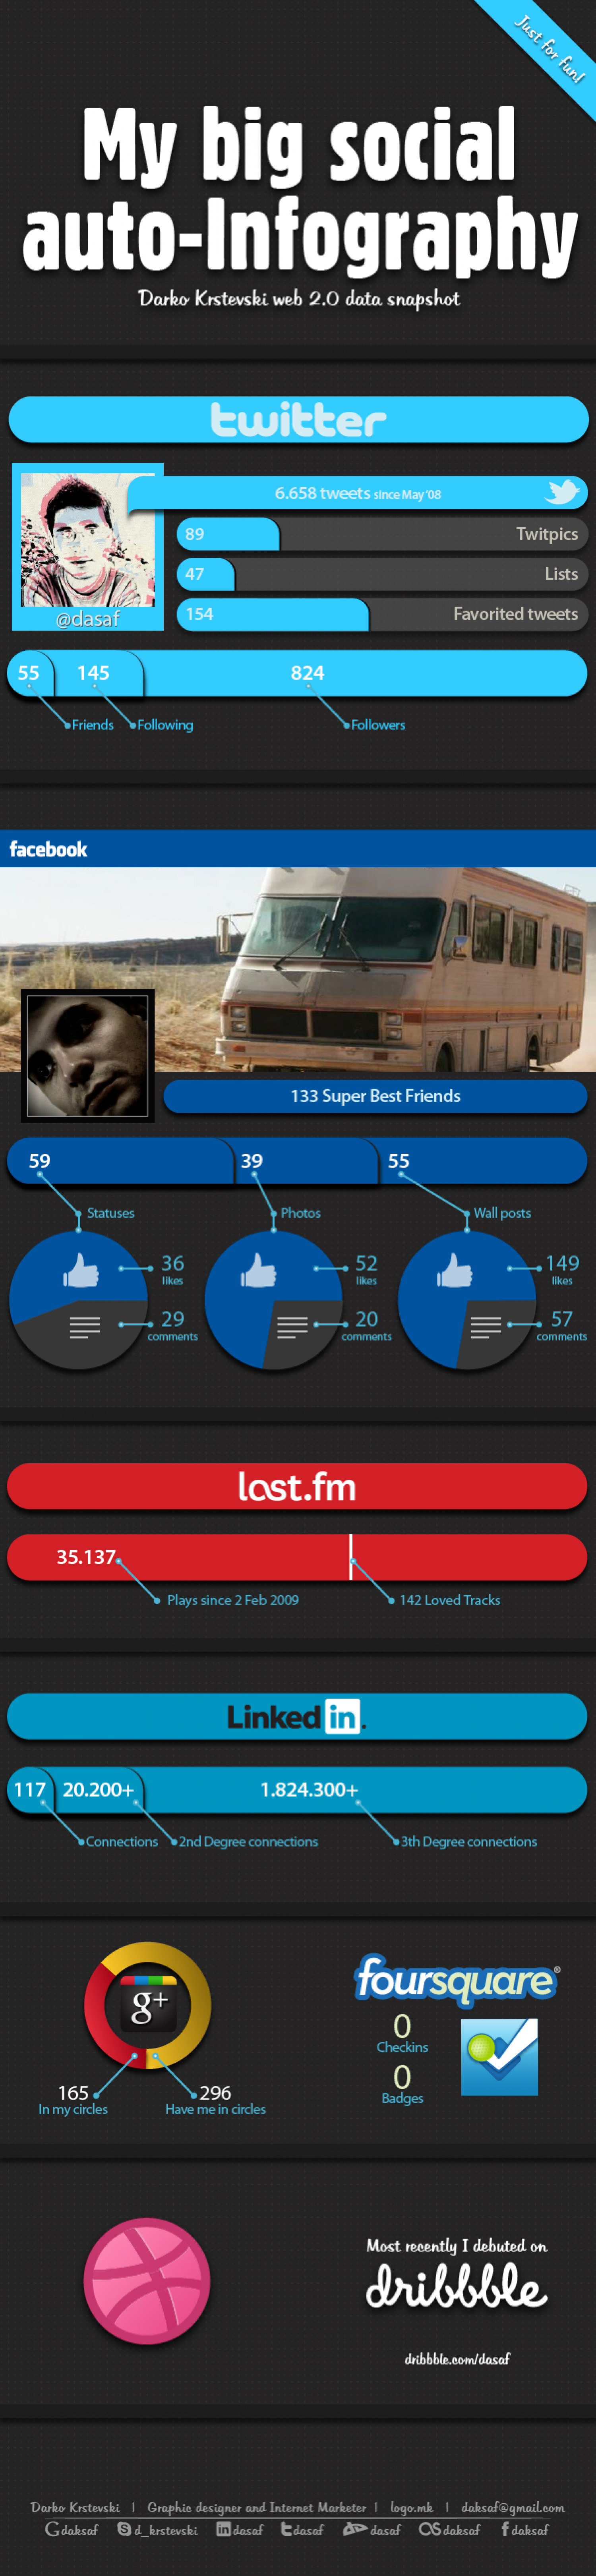 My Big Social Auto-Infography Infographic